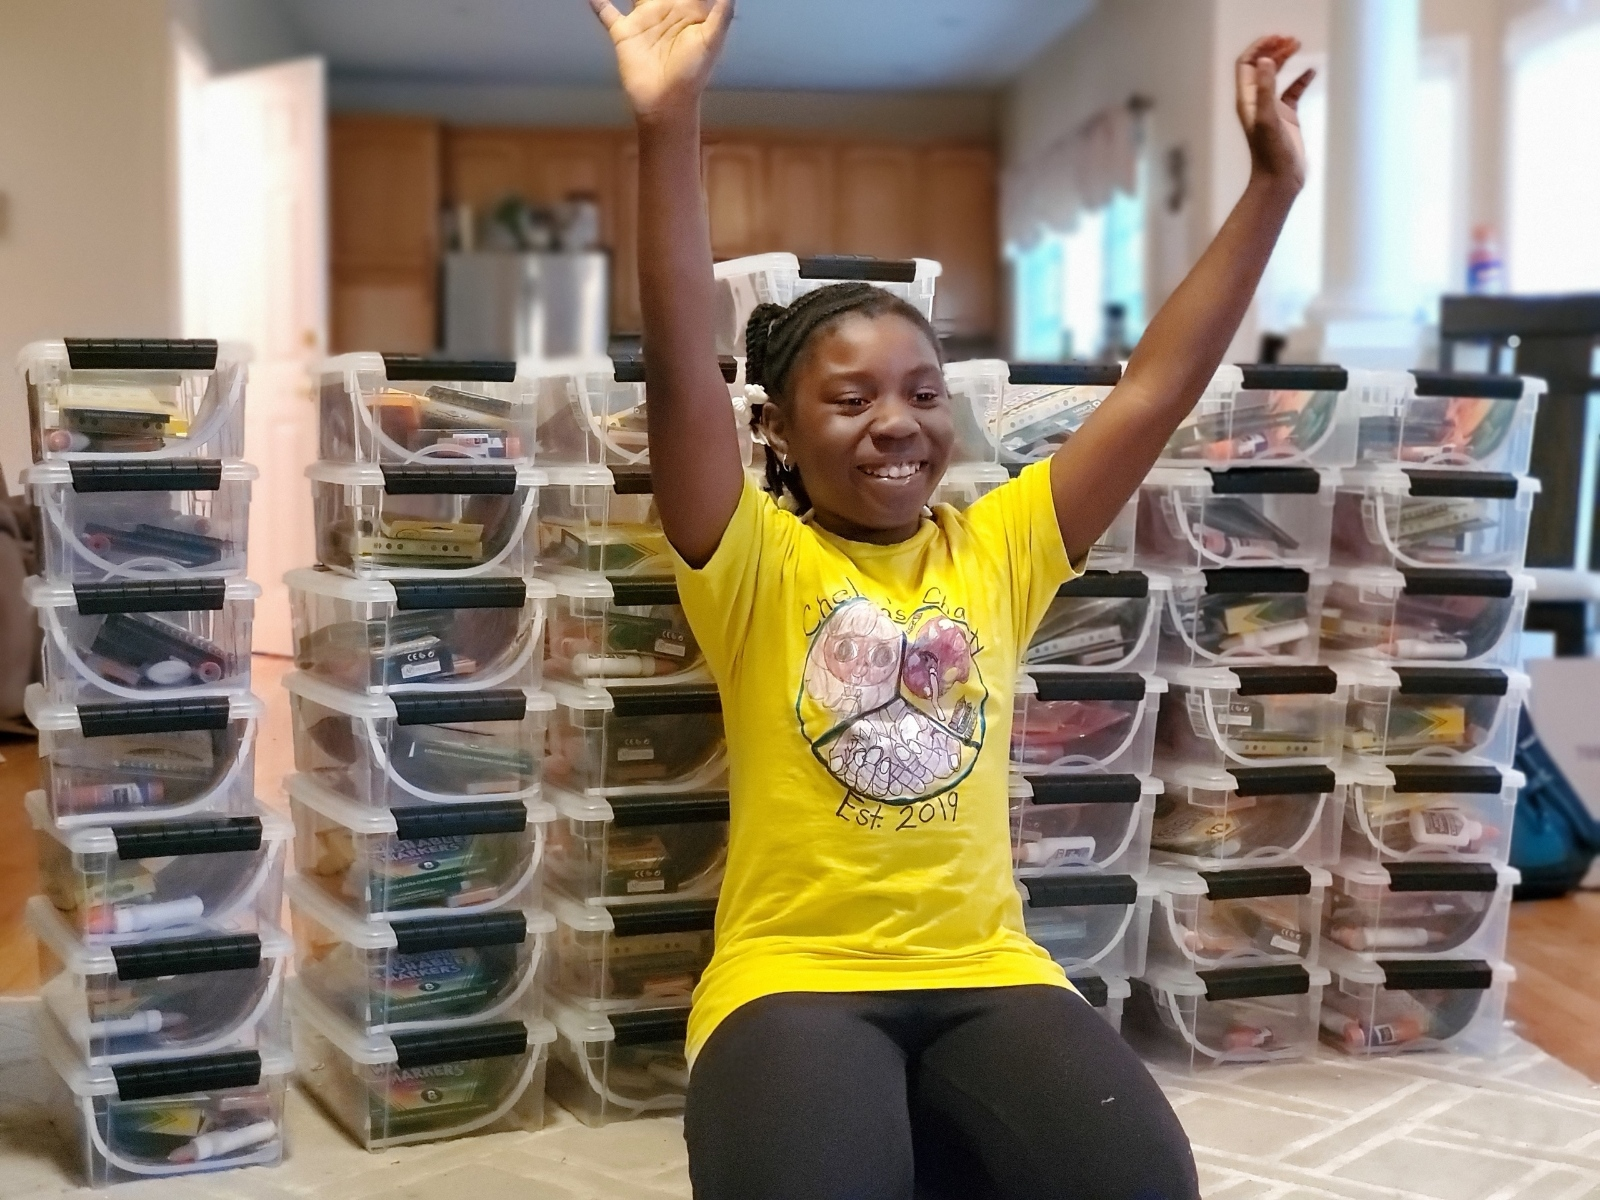 Chelsea Phaire with her hands up in excitement in front of art kits